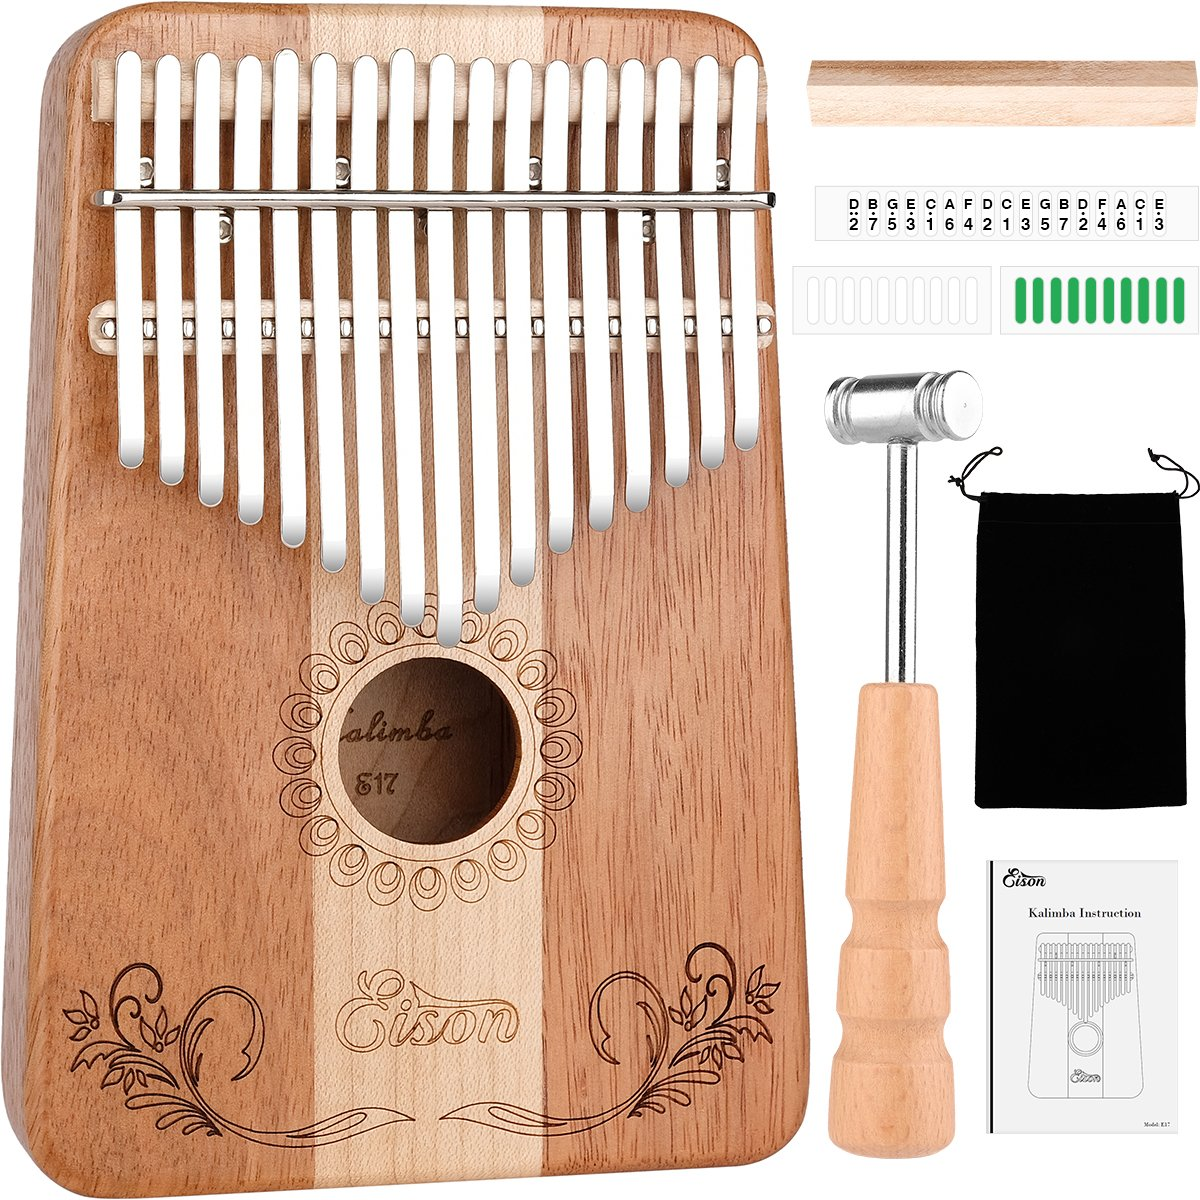 Kalimba,Eison Kalimba Thumb Piano Finger Piano 17 keys with Key Locking System with Instruction and Tune Hammer, Solid Wood Mahogany & Maple Body- Best Christmas Gift for Music Fans Kids Adults,E-17 by Eison